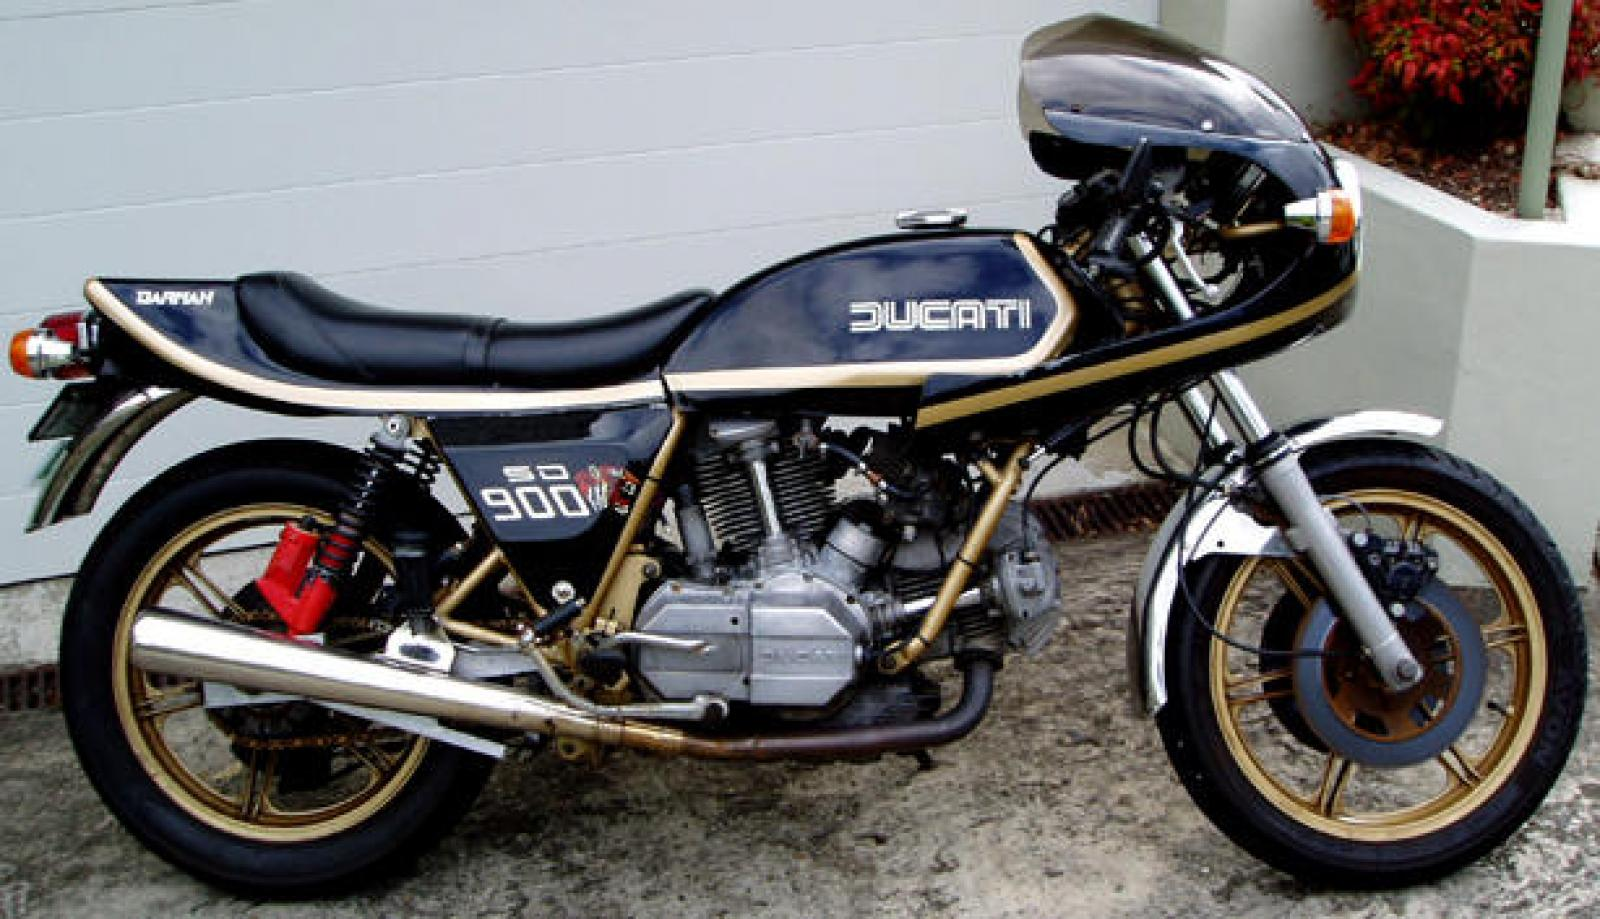 Ducati 900 SS Darmah 1981 wallpapers #16480